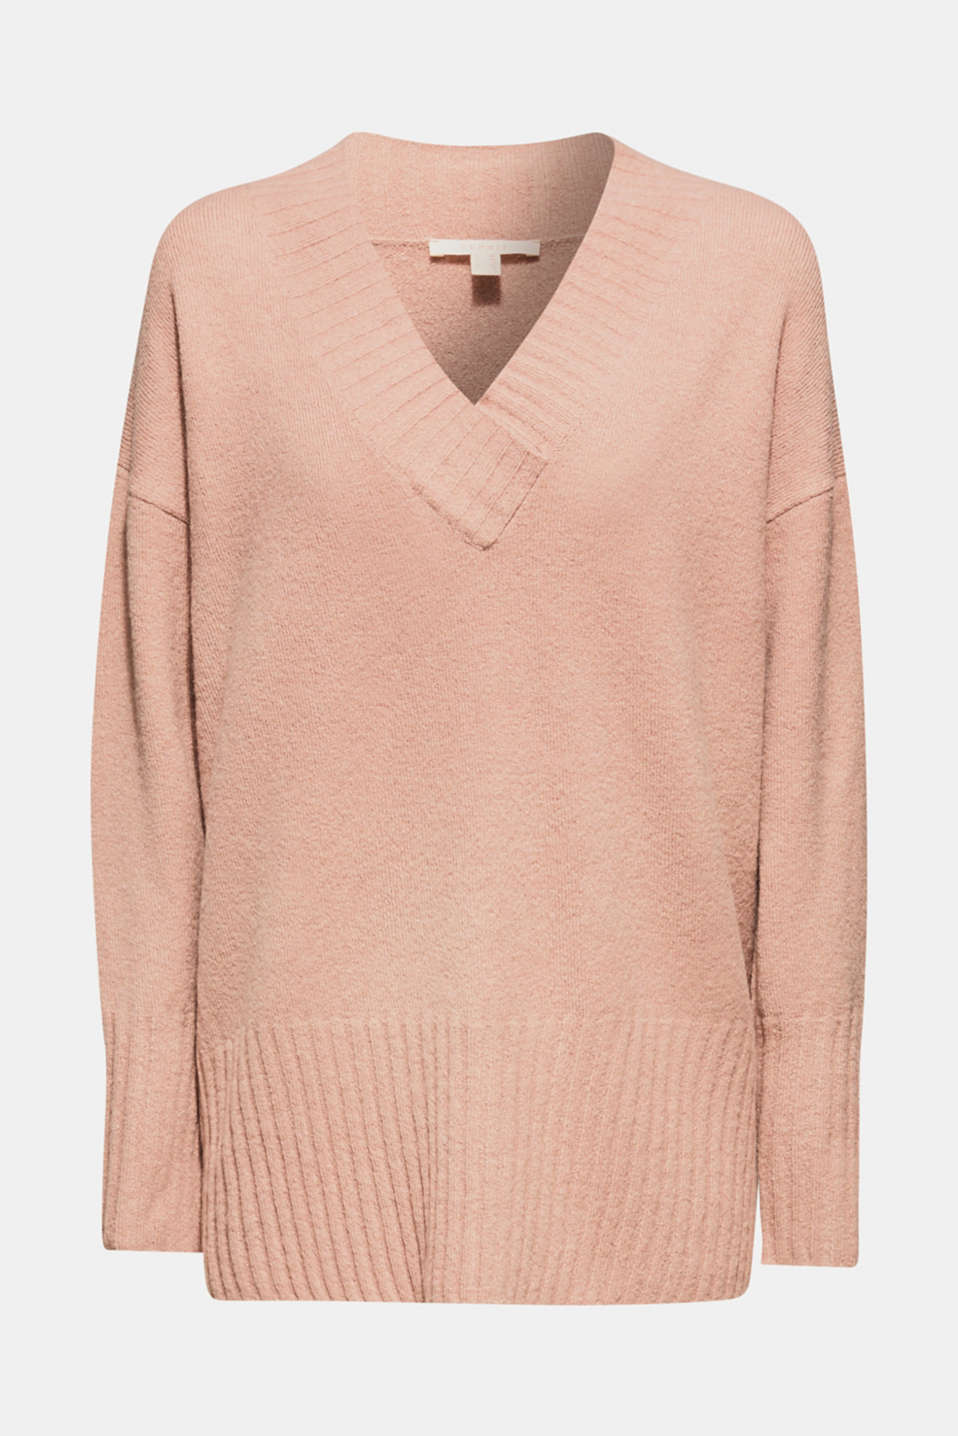 Sweaters, MAUVE 5, detail image number 6